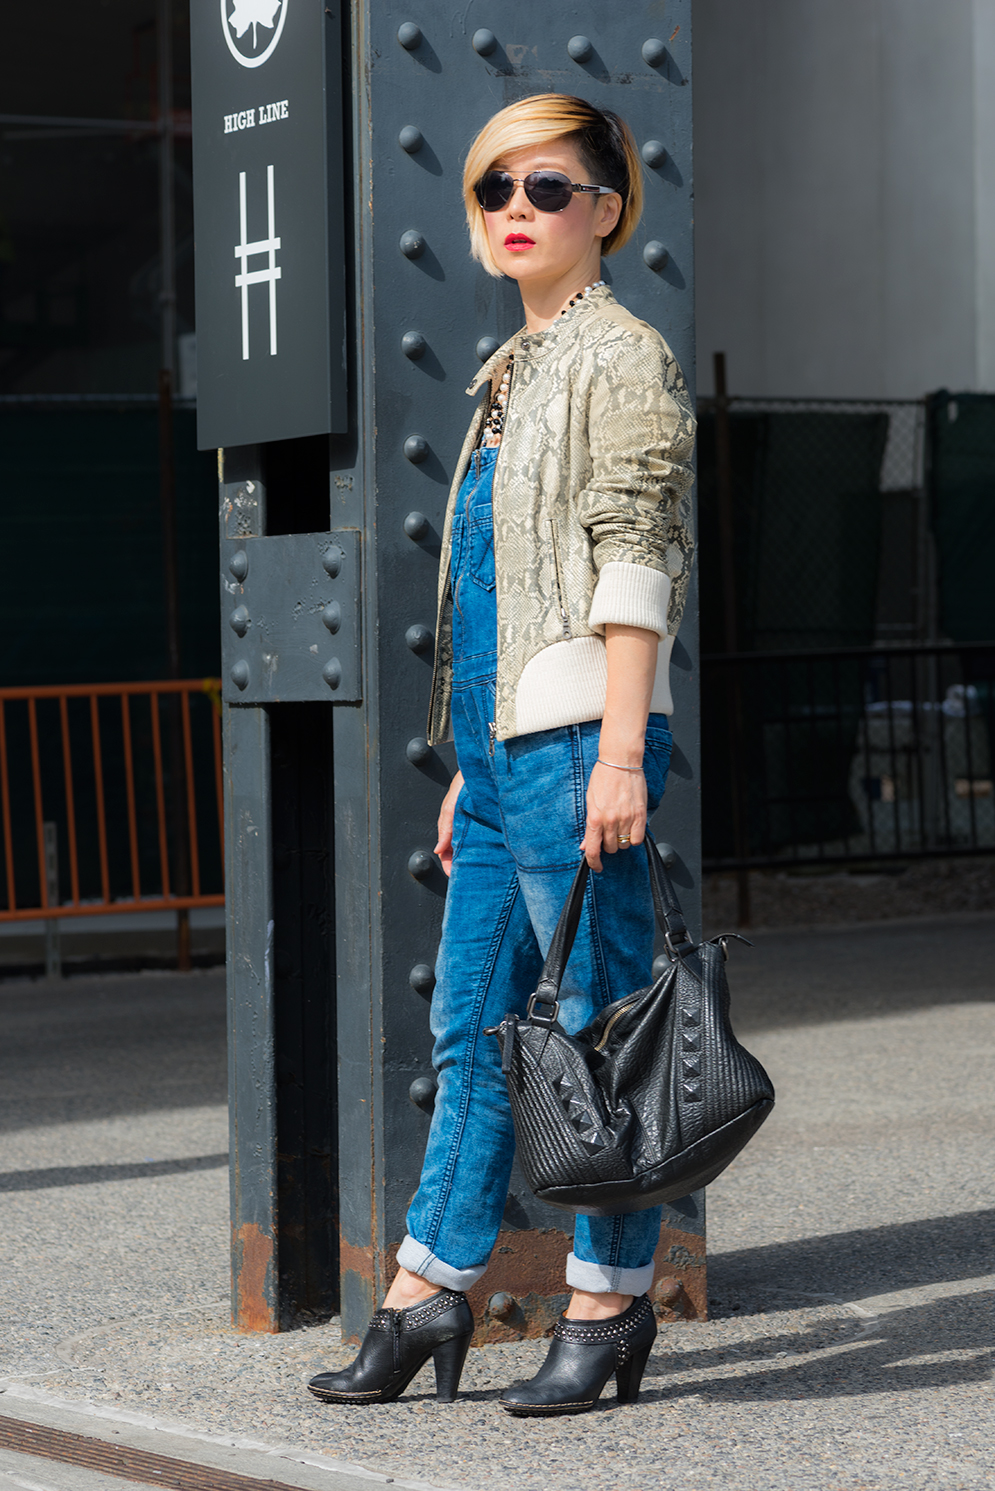 ROCK MAMA NYC LIFESTYLE BLOG - BEST MOM'S BAG EVER!